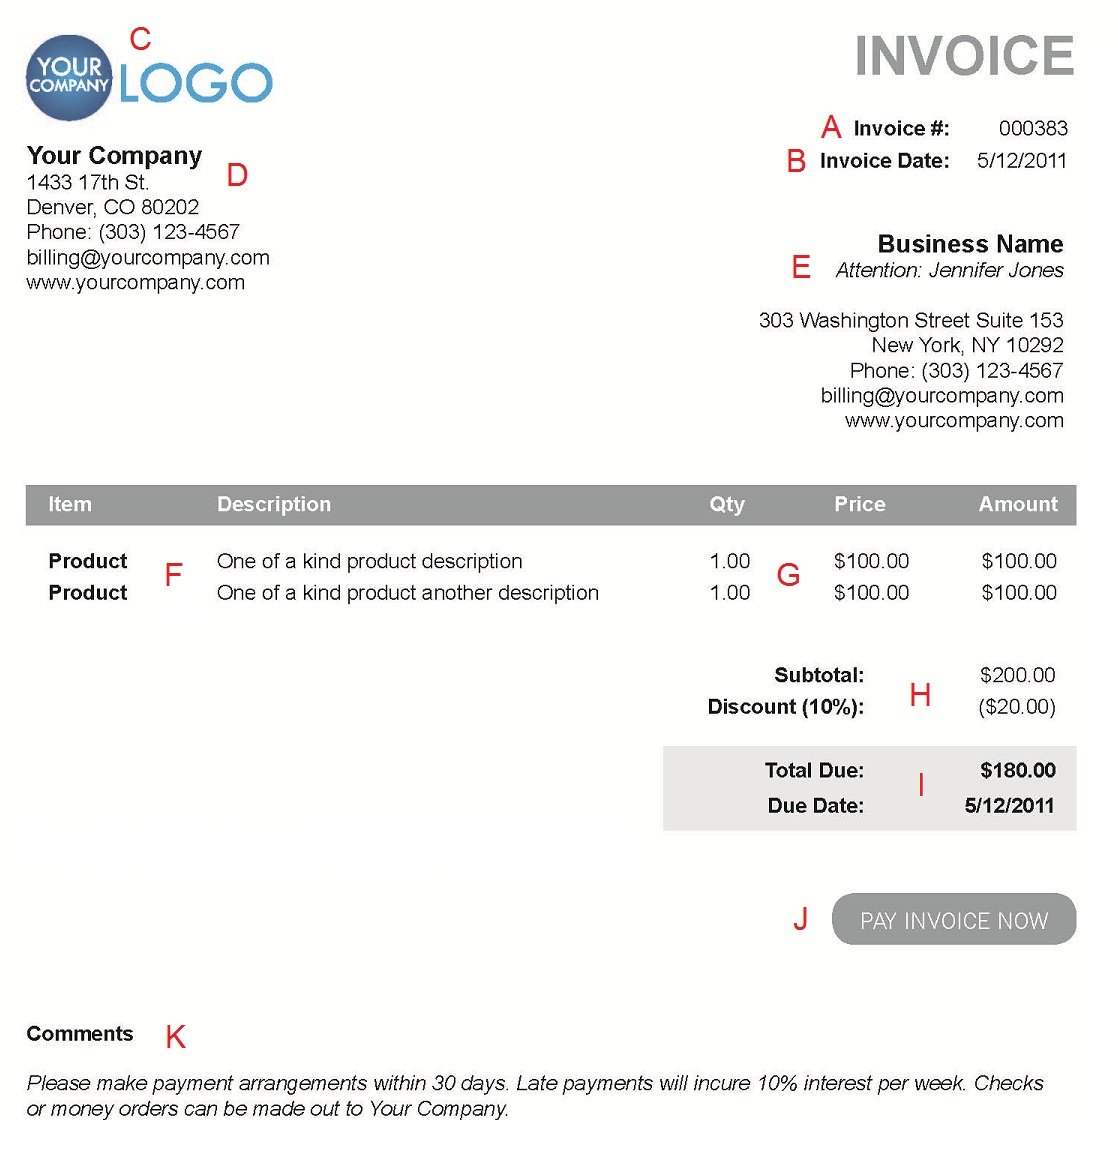 Ultrablogus  Outstanding The  Different Sections Of An Electronic Payment Invoice With Exciting A  With Astounding How Does Paypal Invoice Work Also Invoice Vs Statement In Addition Invoice Template Google And Print Invoice As Well As Vendor Invoice Posting In Sap Additionally Shopify Invoice From Paysimplecom With Ultrablogus  Exciting The  Different Sections Of An Electronic Payment Invoice With Astounding A  And Outstanding How Does Paypal Invoice Work Also Invoice Vs Statement In Addition Invoice Template Google From Paysimplecom